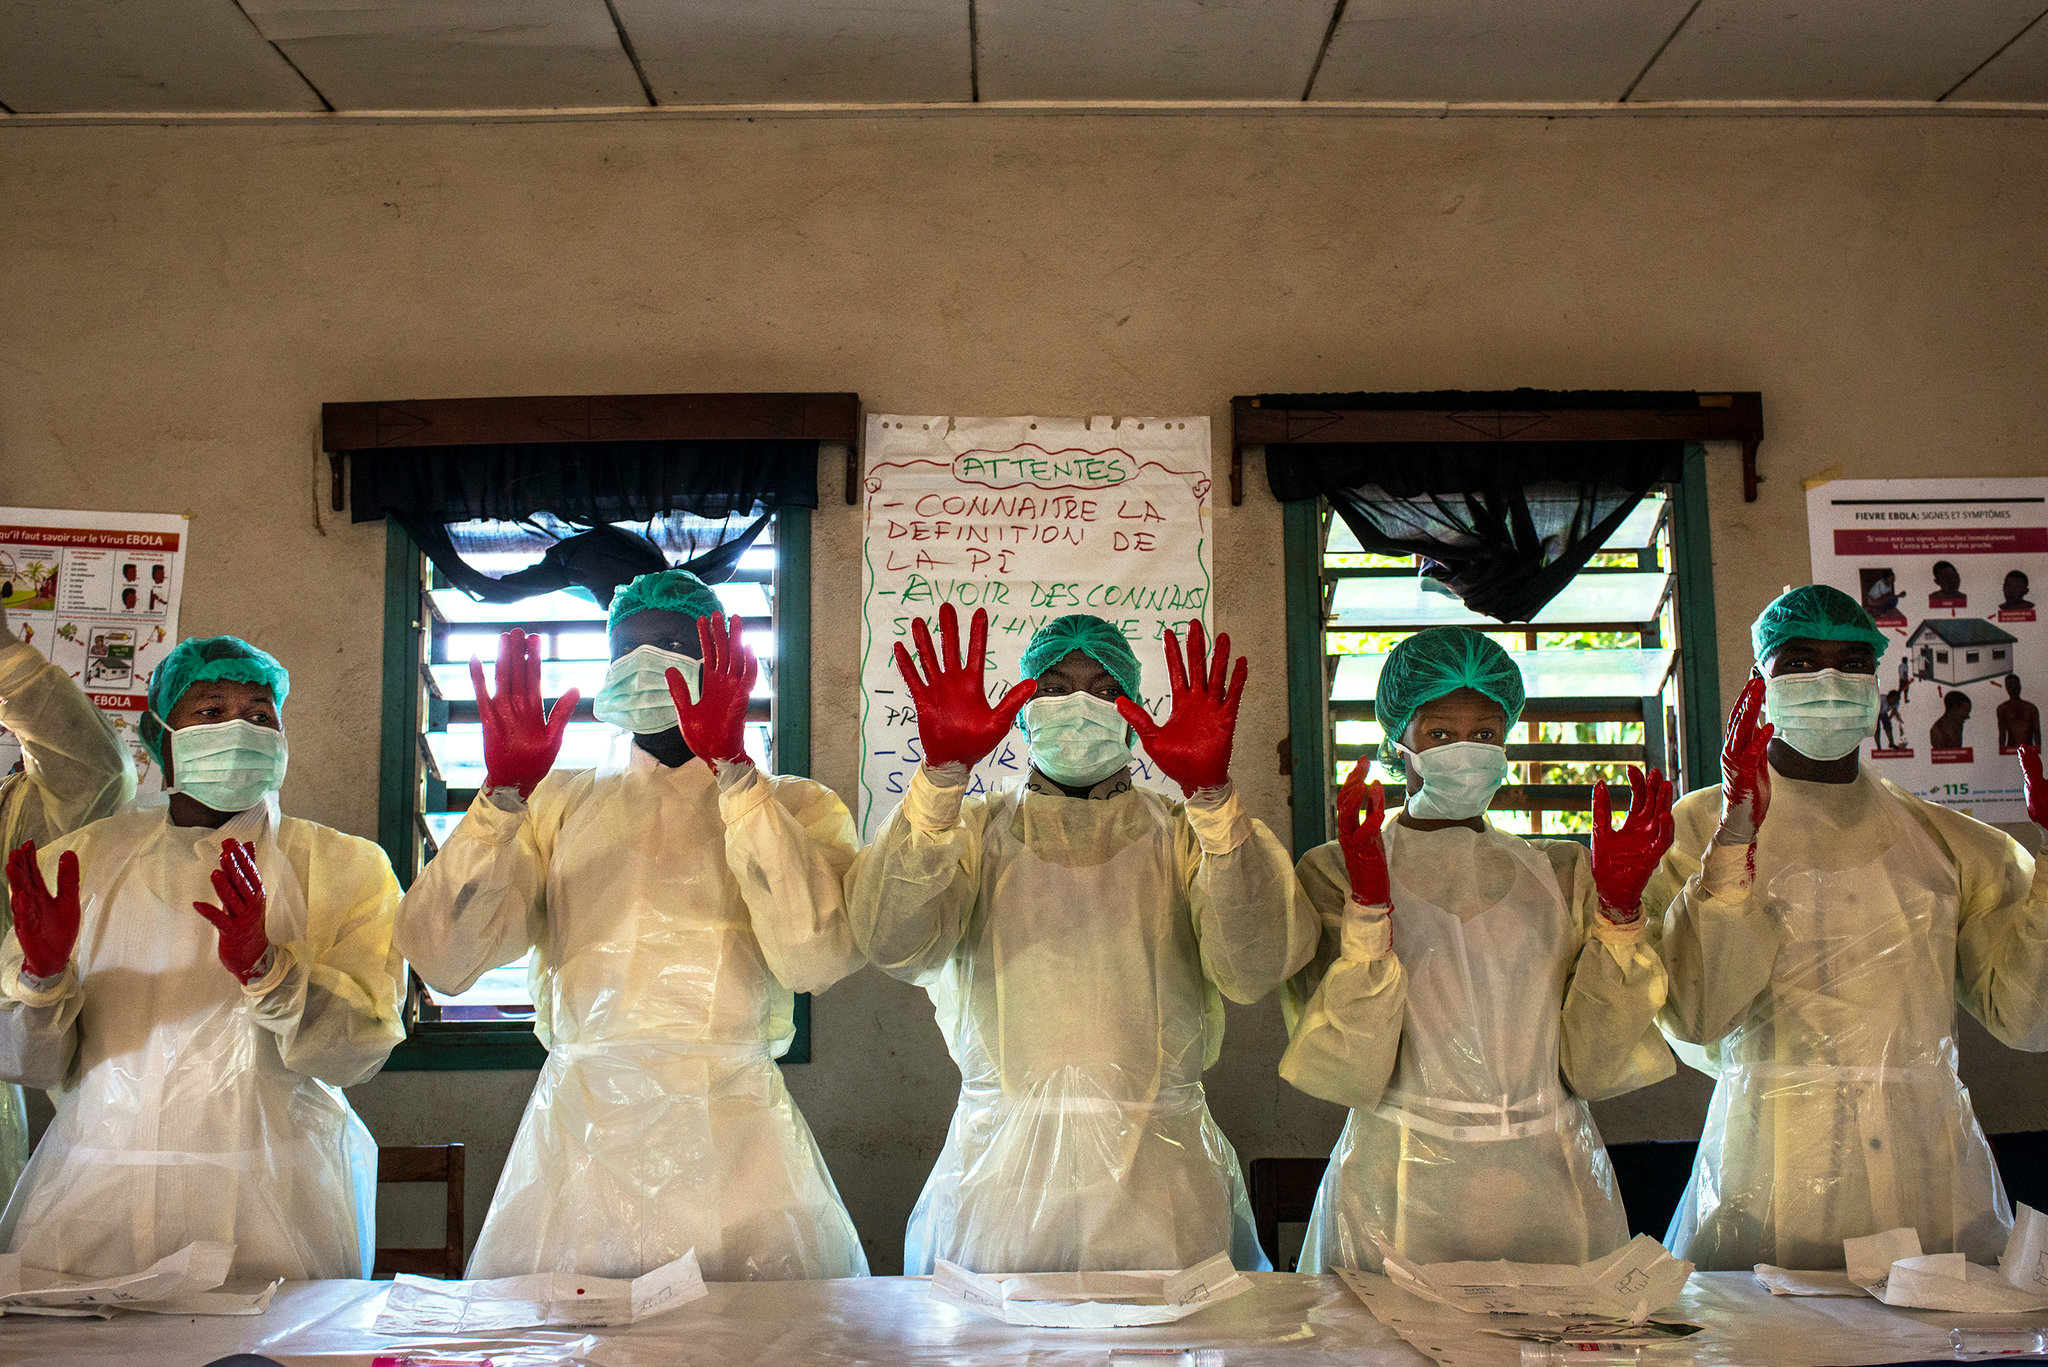 Students at an infection-prevention class showing their results in a hand-washing exercise while wrapped securely in medical robes, masks, and gloves